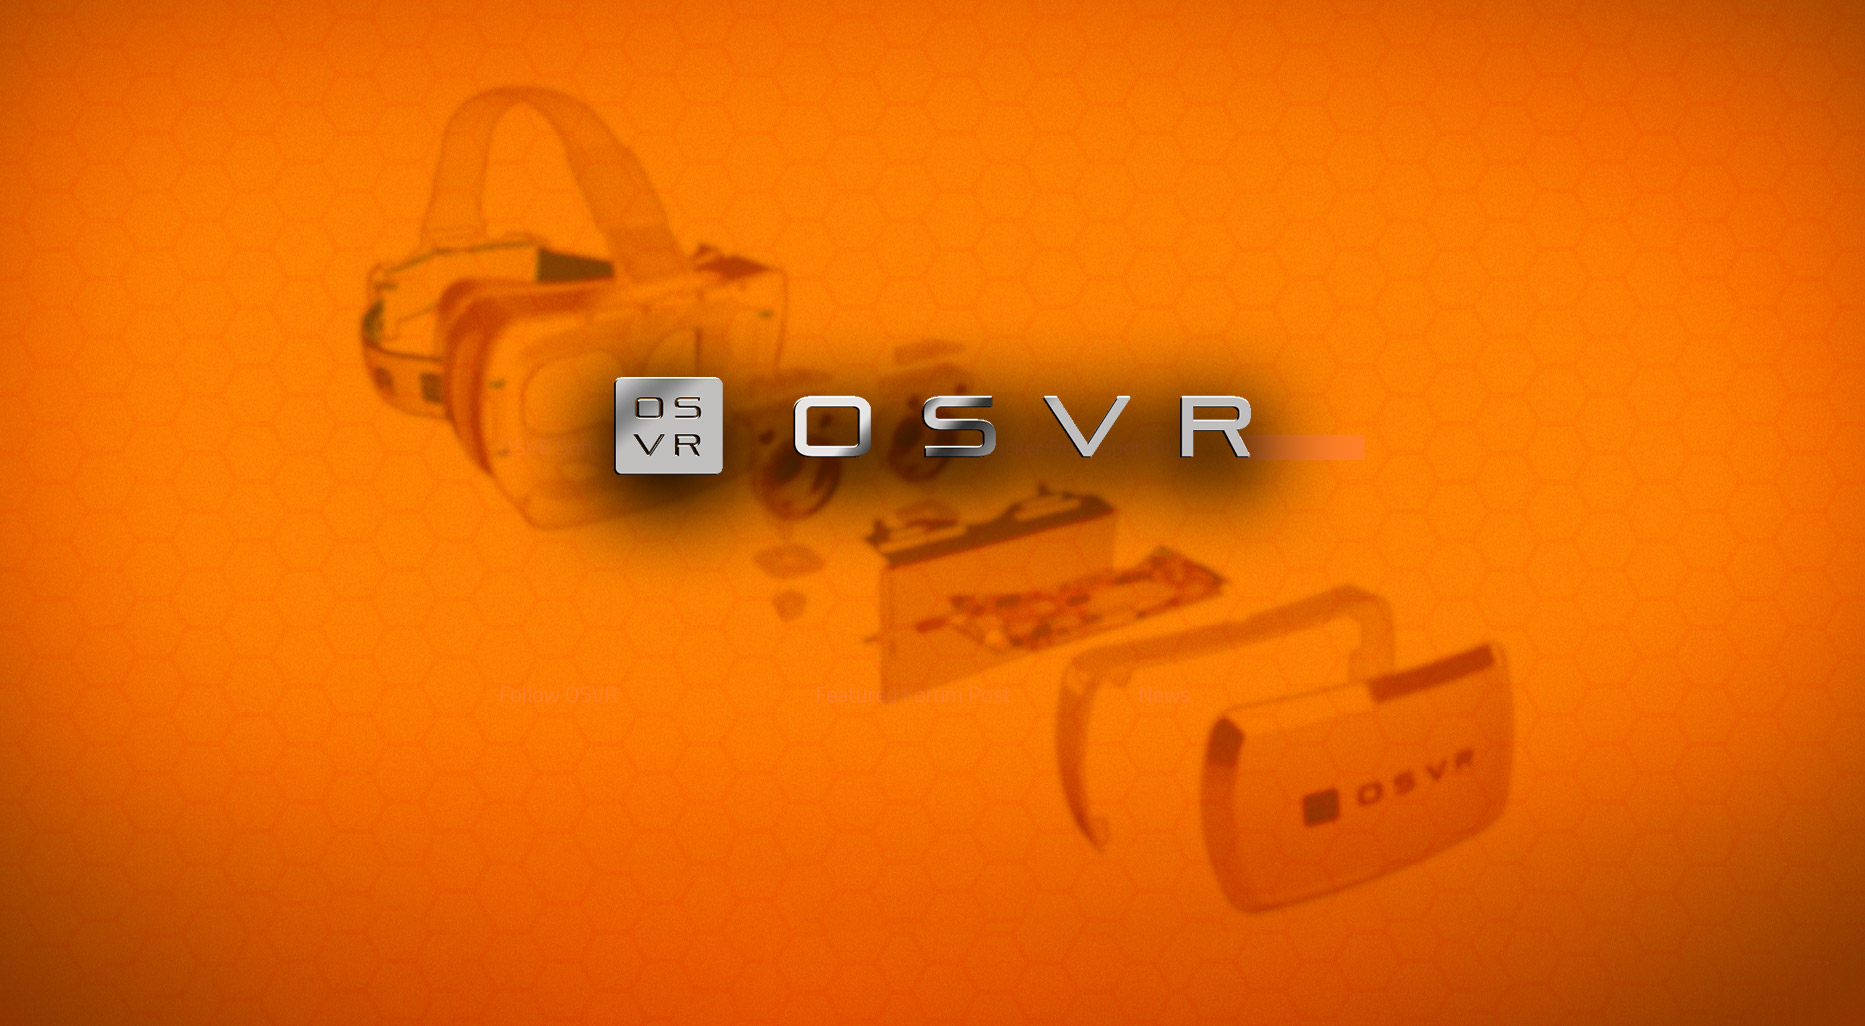 OSVR Roadmap: Creating an Ecosystem of Interoperable VR Hardware and